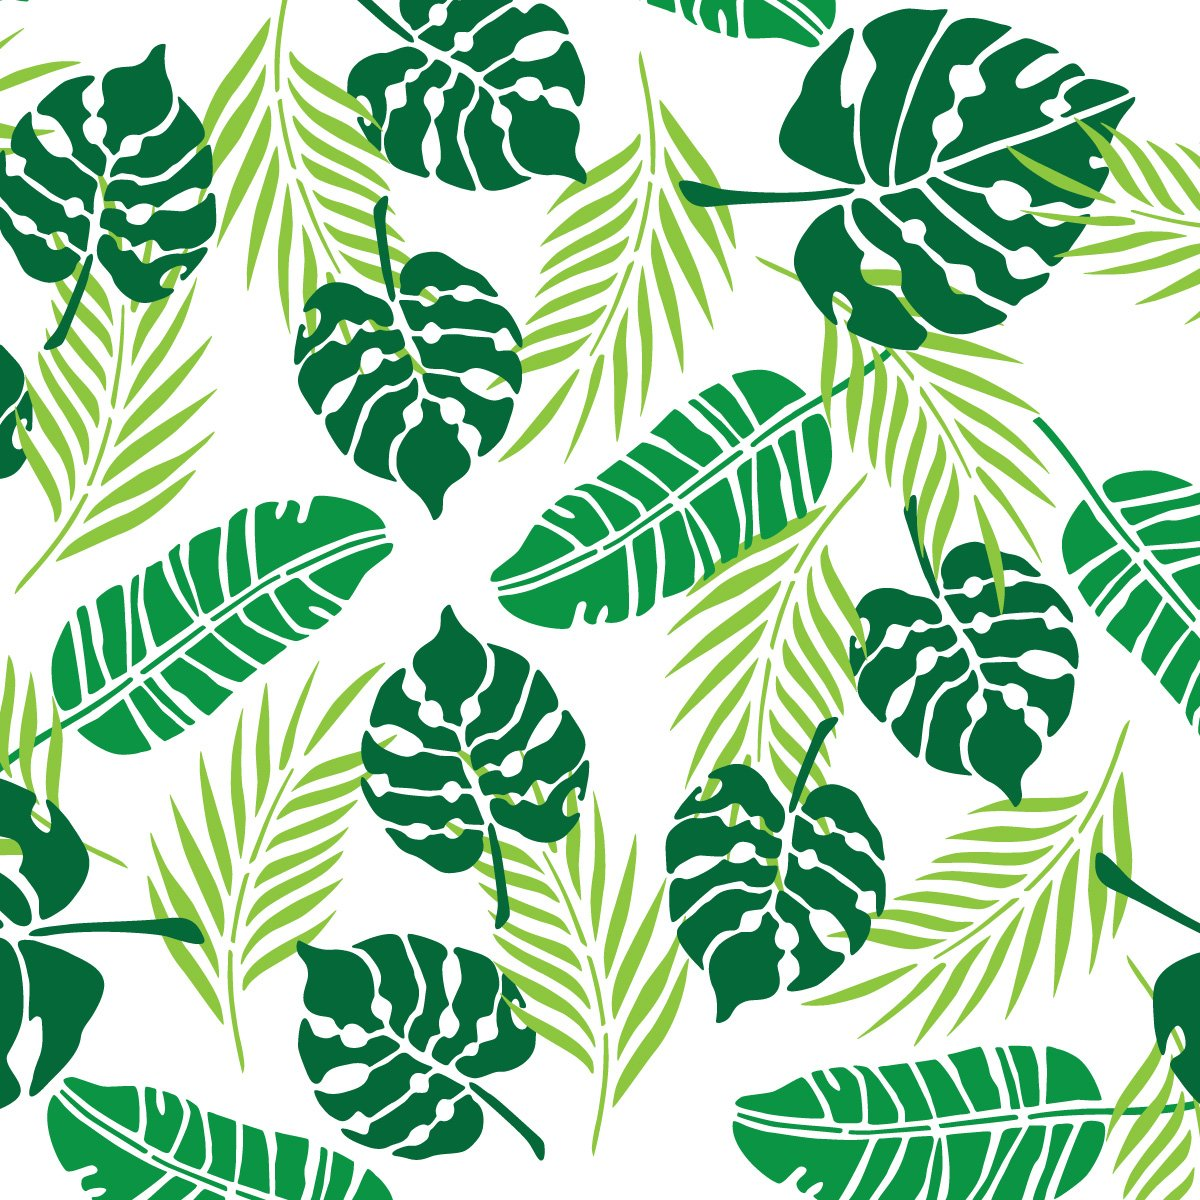 Palm Frond Banana Leaf Monstera Stencils Winner At Random On Friday 9th March 8pm Pictwitter RMCFf8iHu3